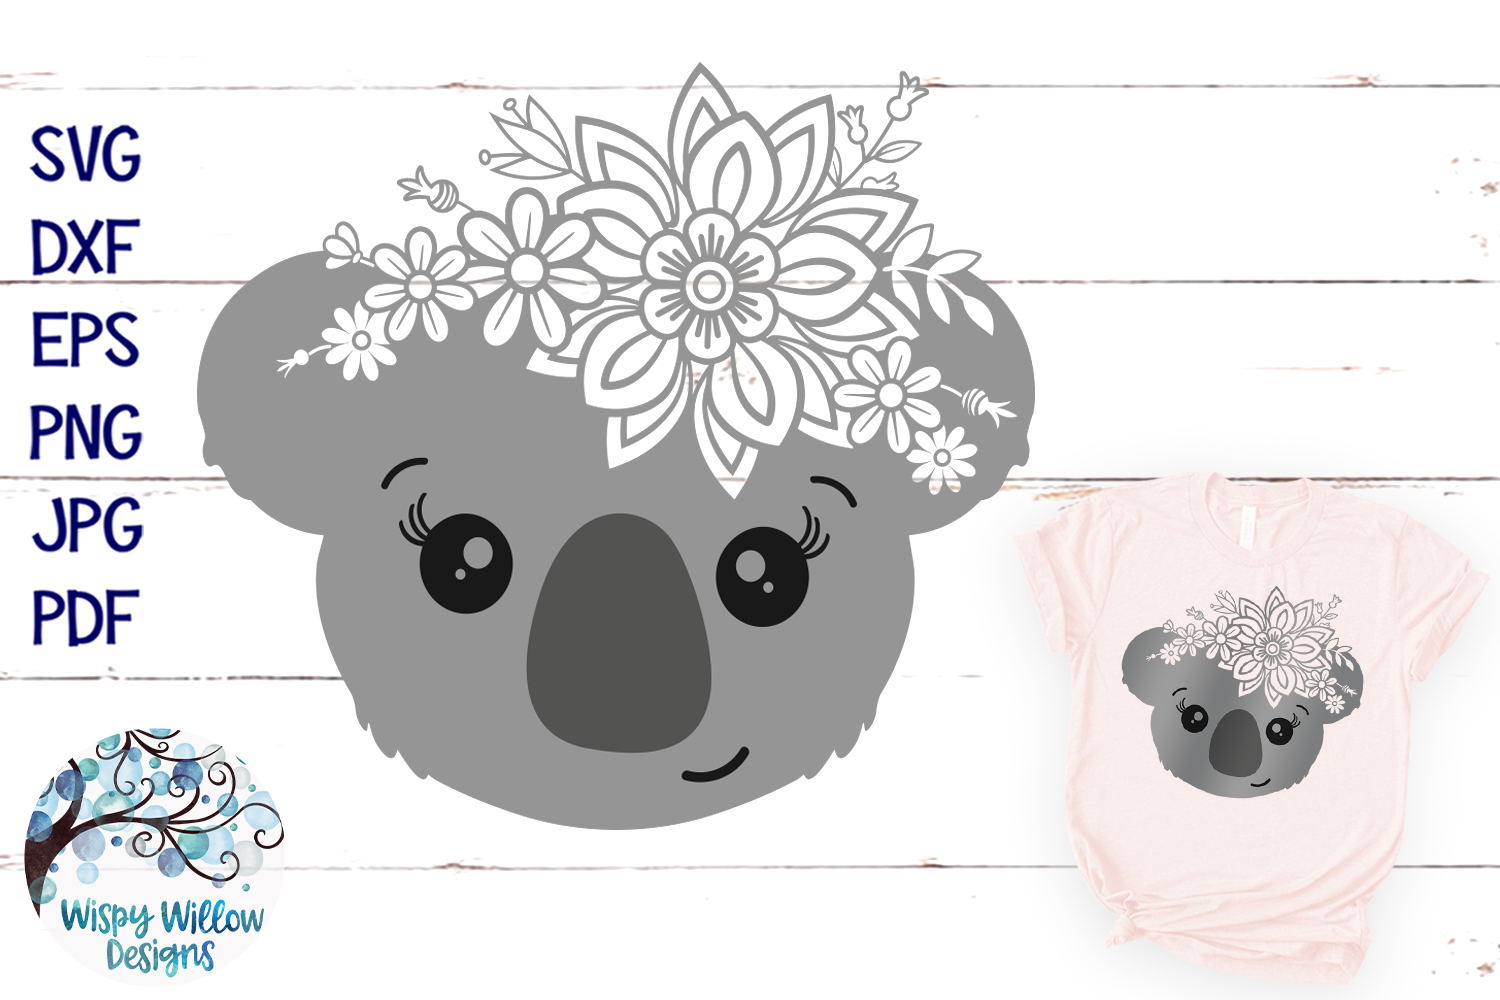 Pretty Animal SVG Bundle | Floral Animal Faces SVG Cut Files example image 12